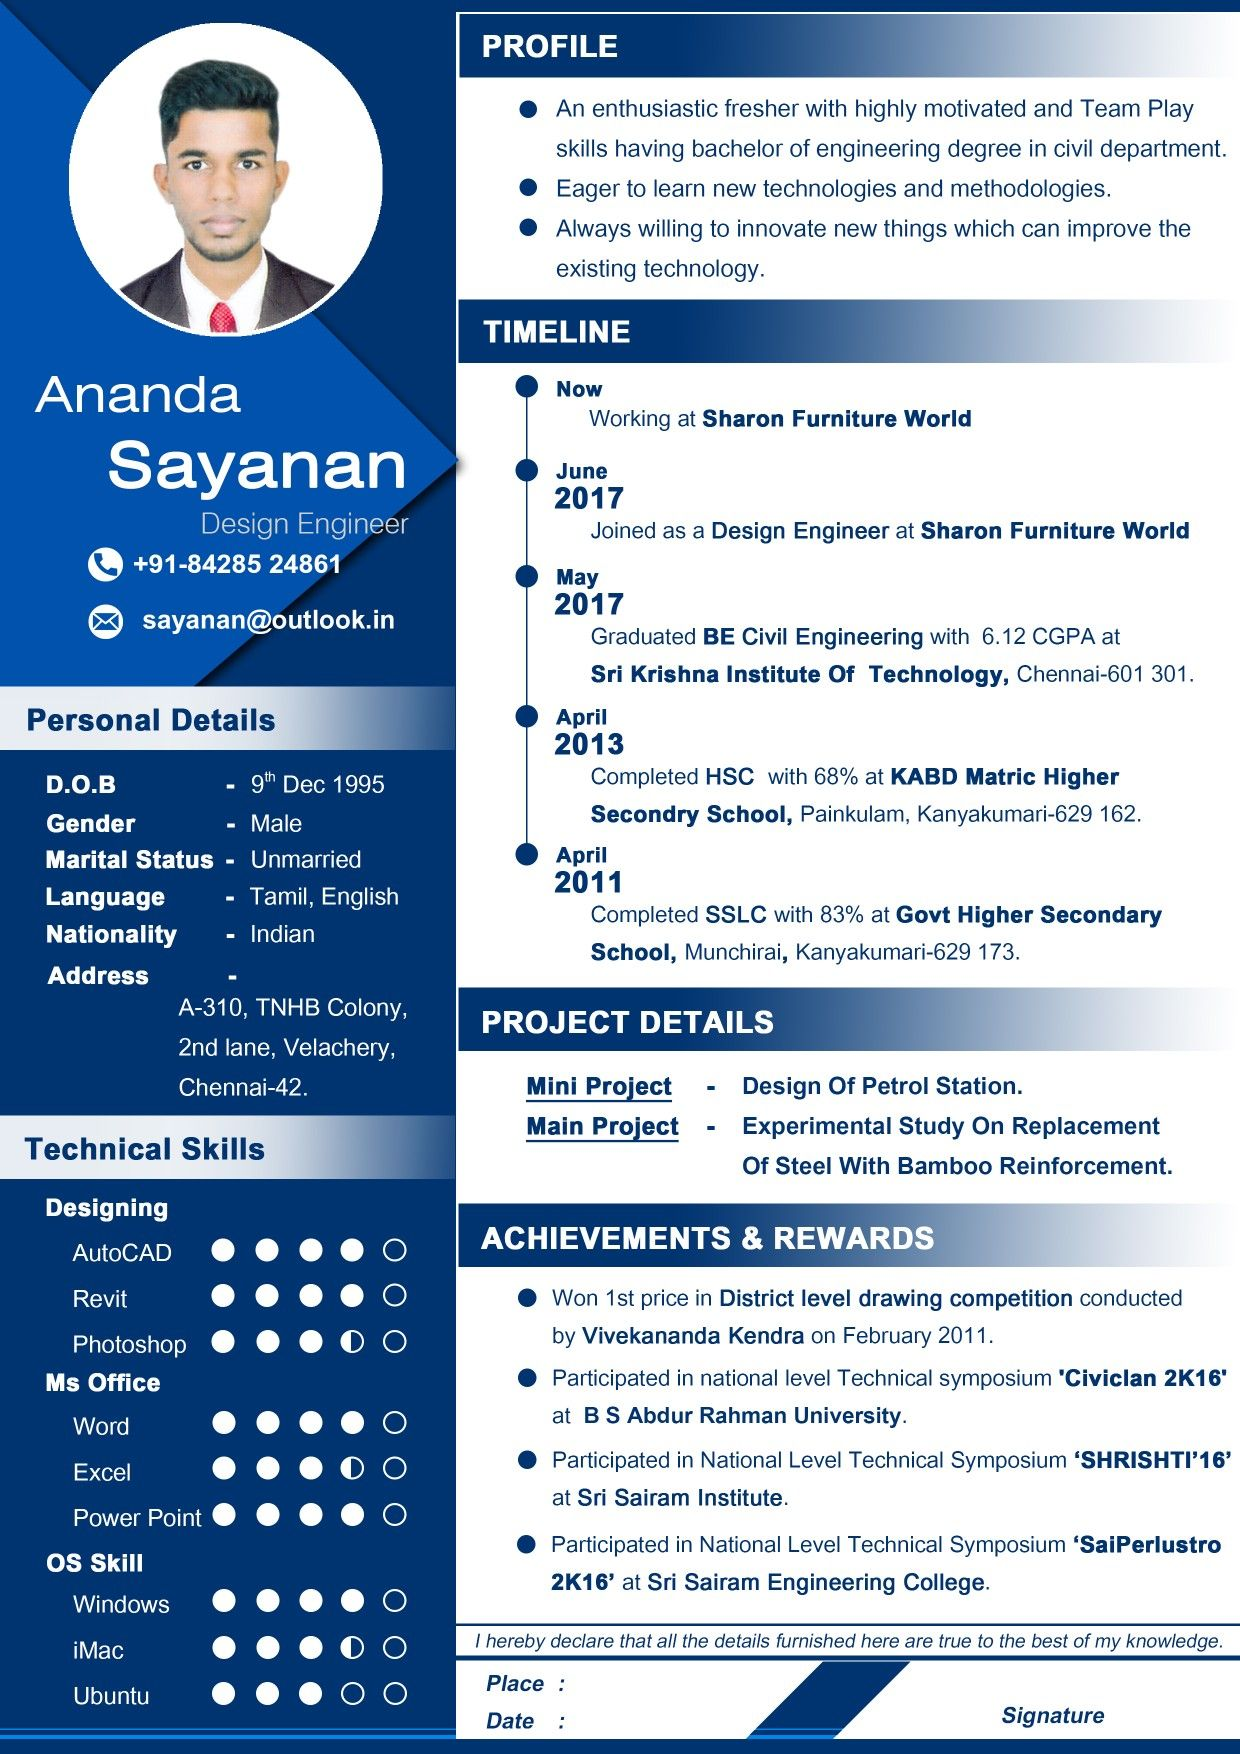 Profile Summary In Resume For Freshers Professional Resume For Civil Engineer Fresher Awesome